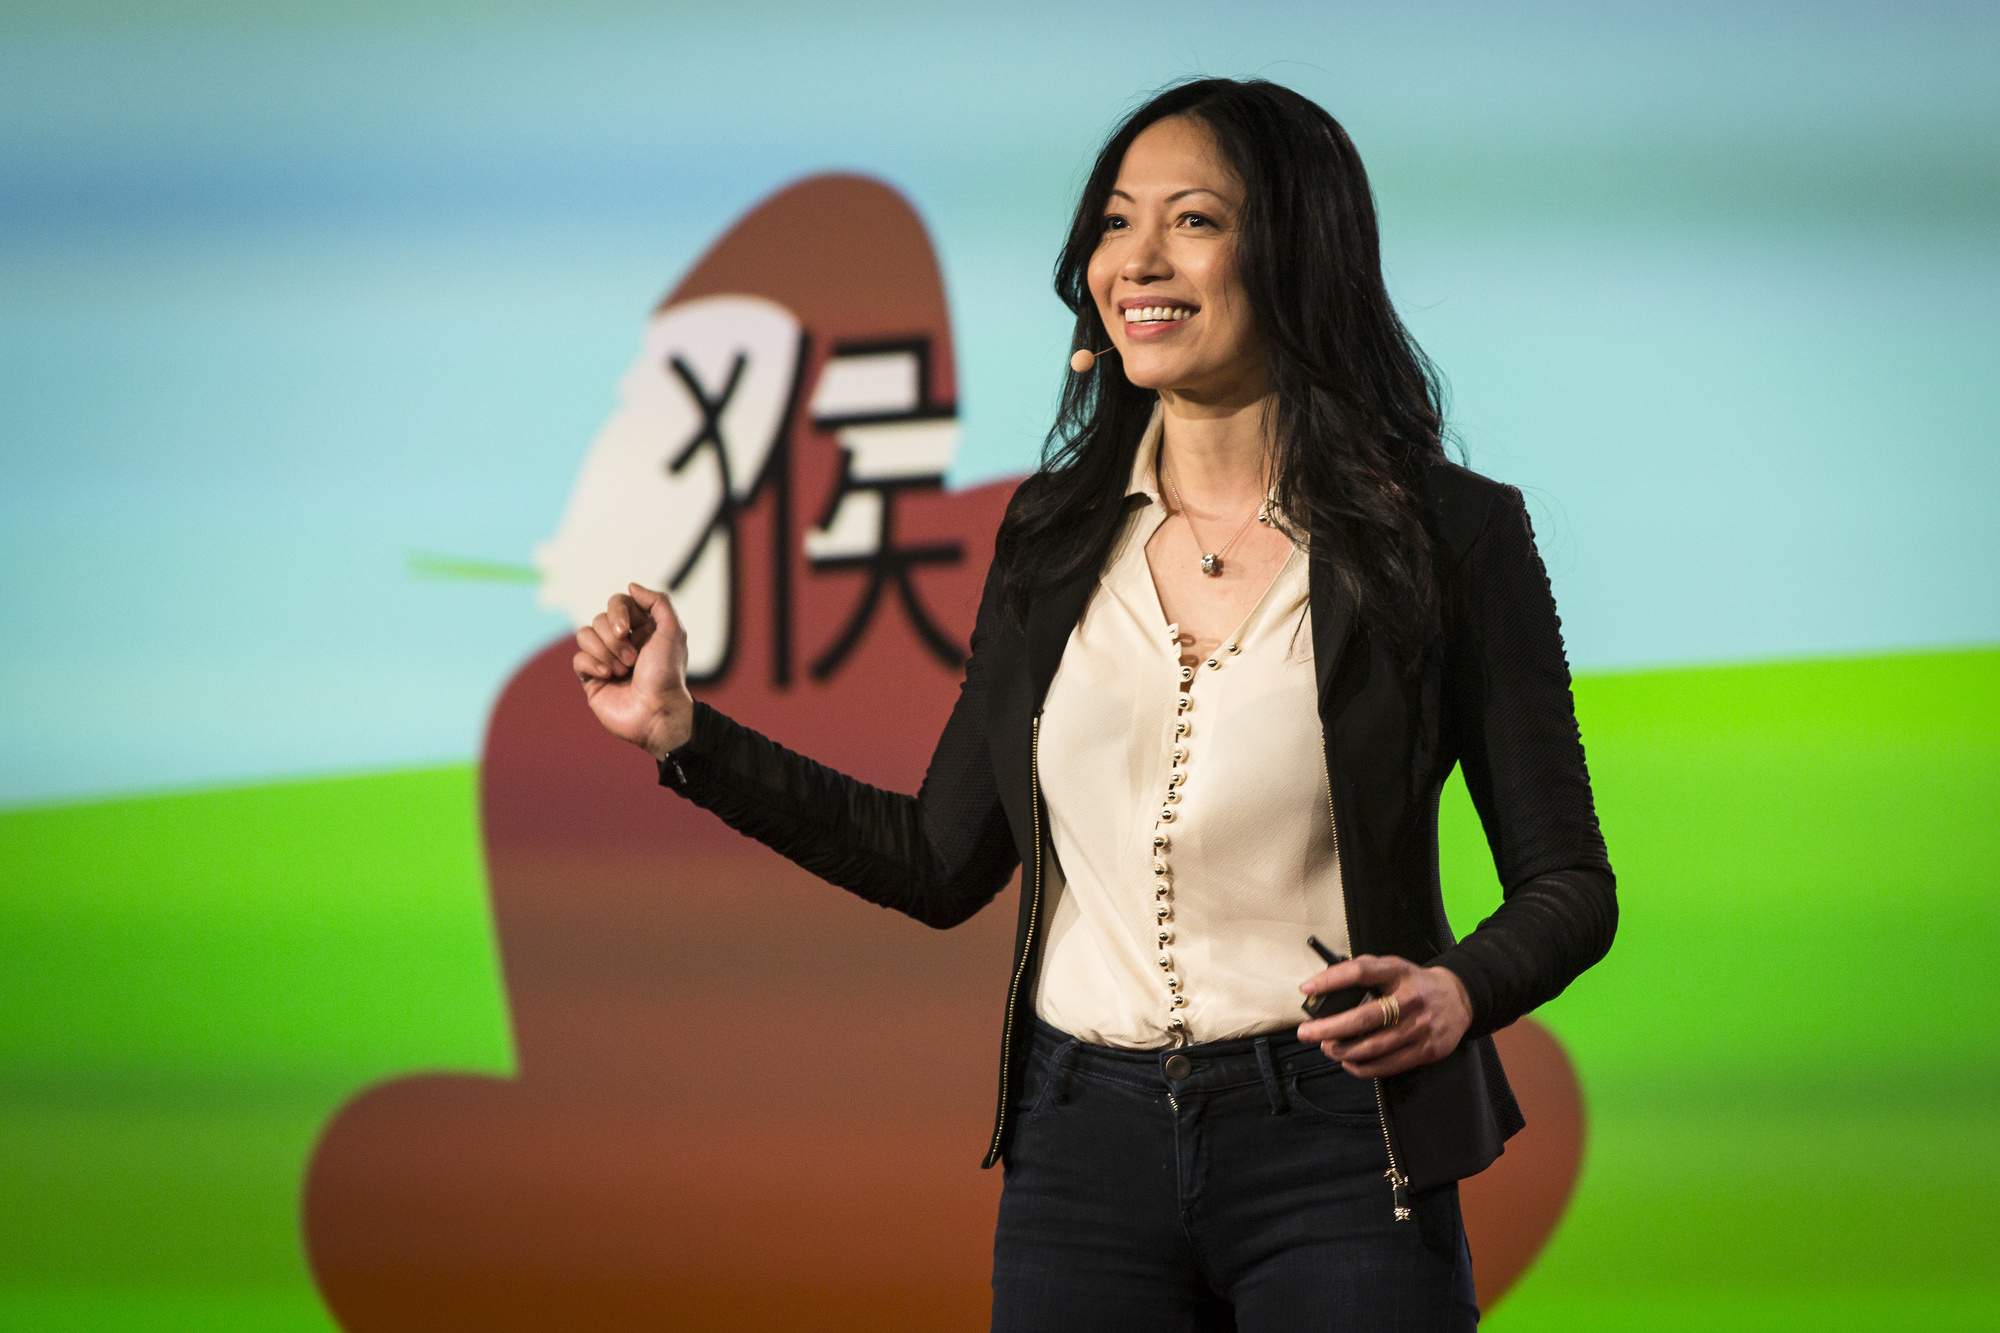 Shaolan Hsueh at TED University. TED2016. February 15-19, 2016, Vancouver Convention Center, Vancouver, Canada. Photo: Ryan Lash / TED